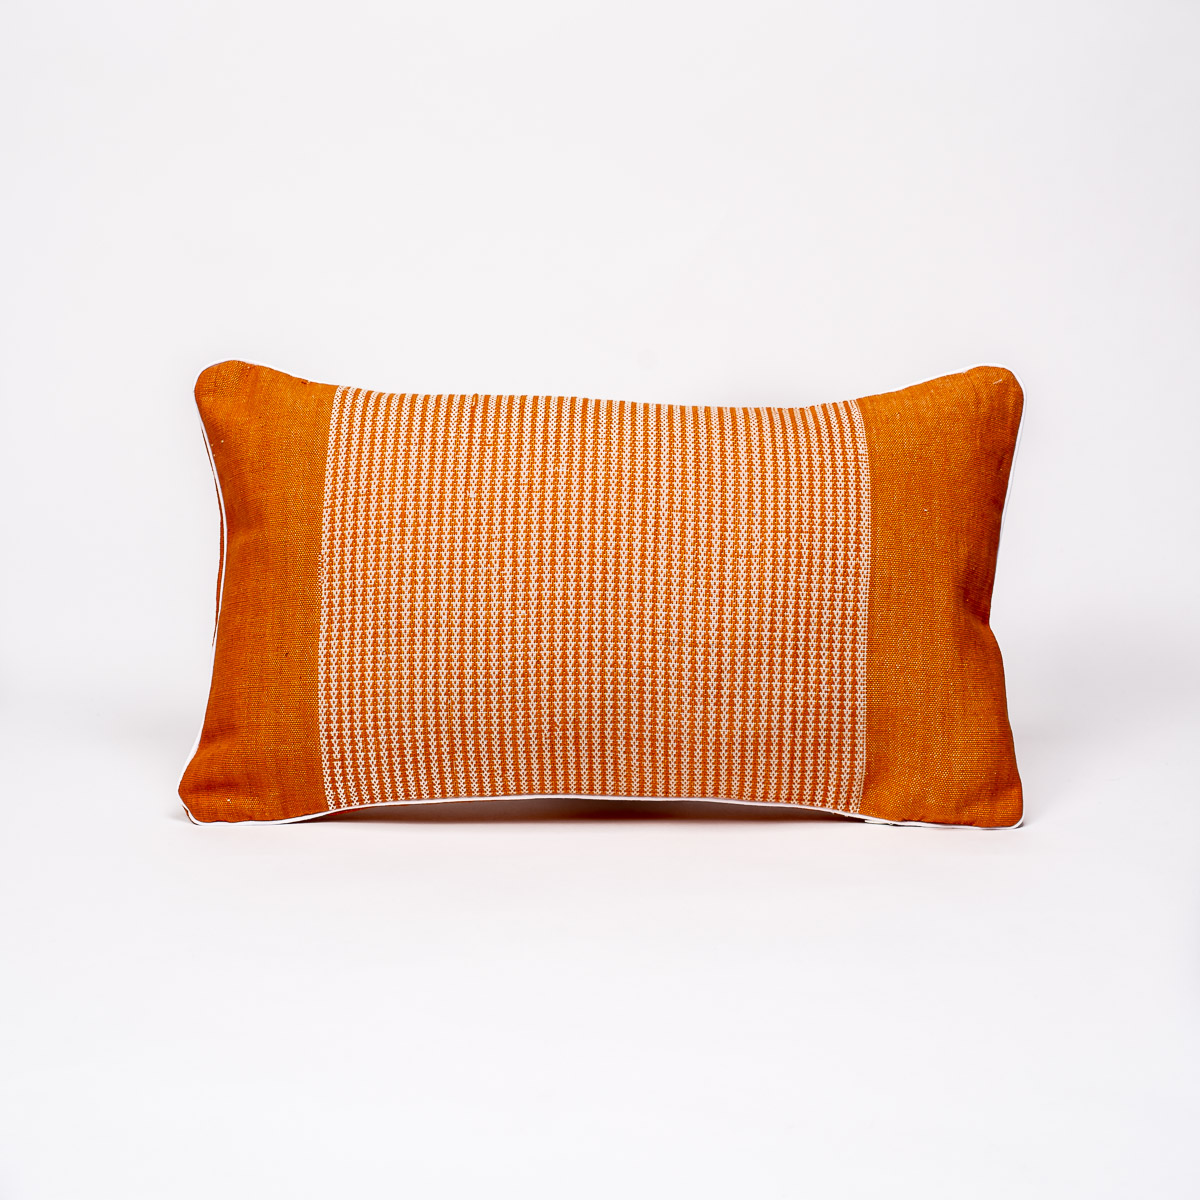 2020-10-JMDUFOUR-TrendEthics-Packshot-coussin-nha-sra-orange-petit-1-light